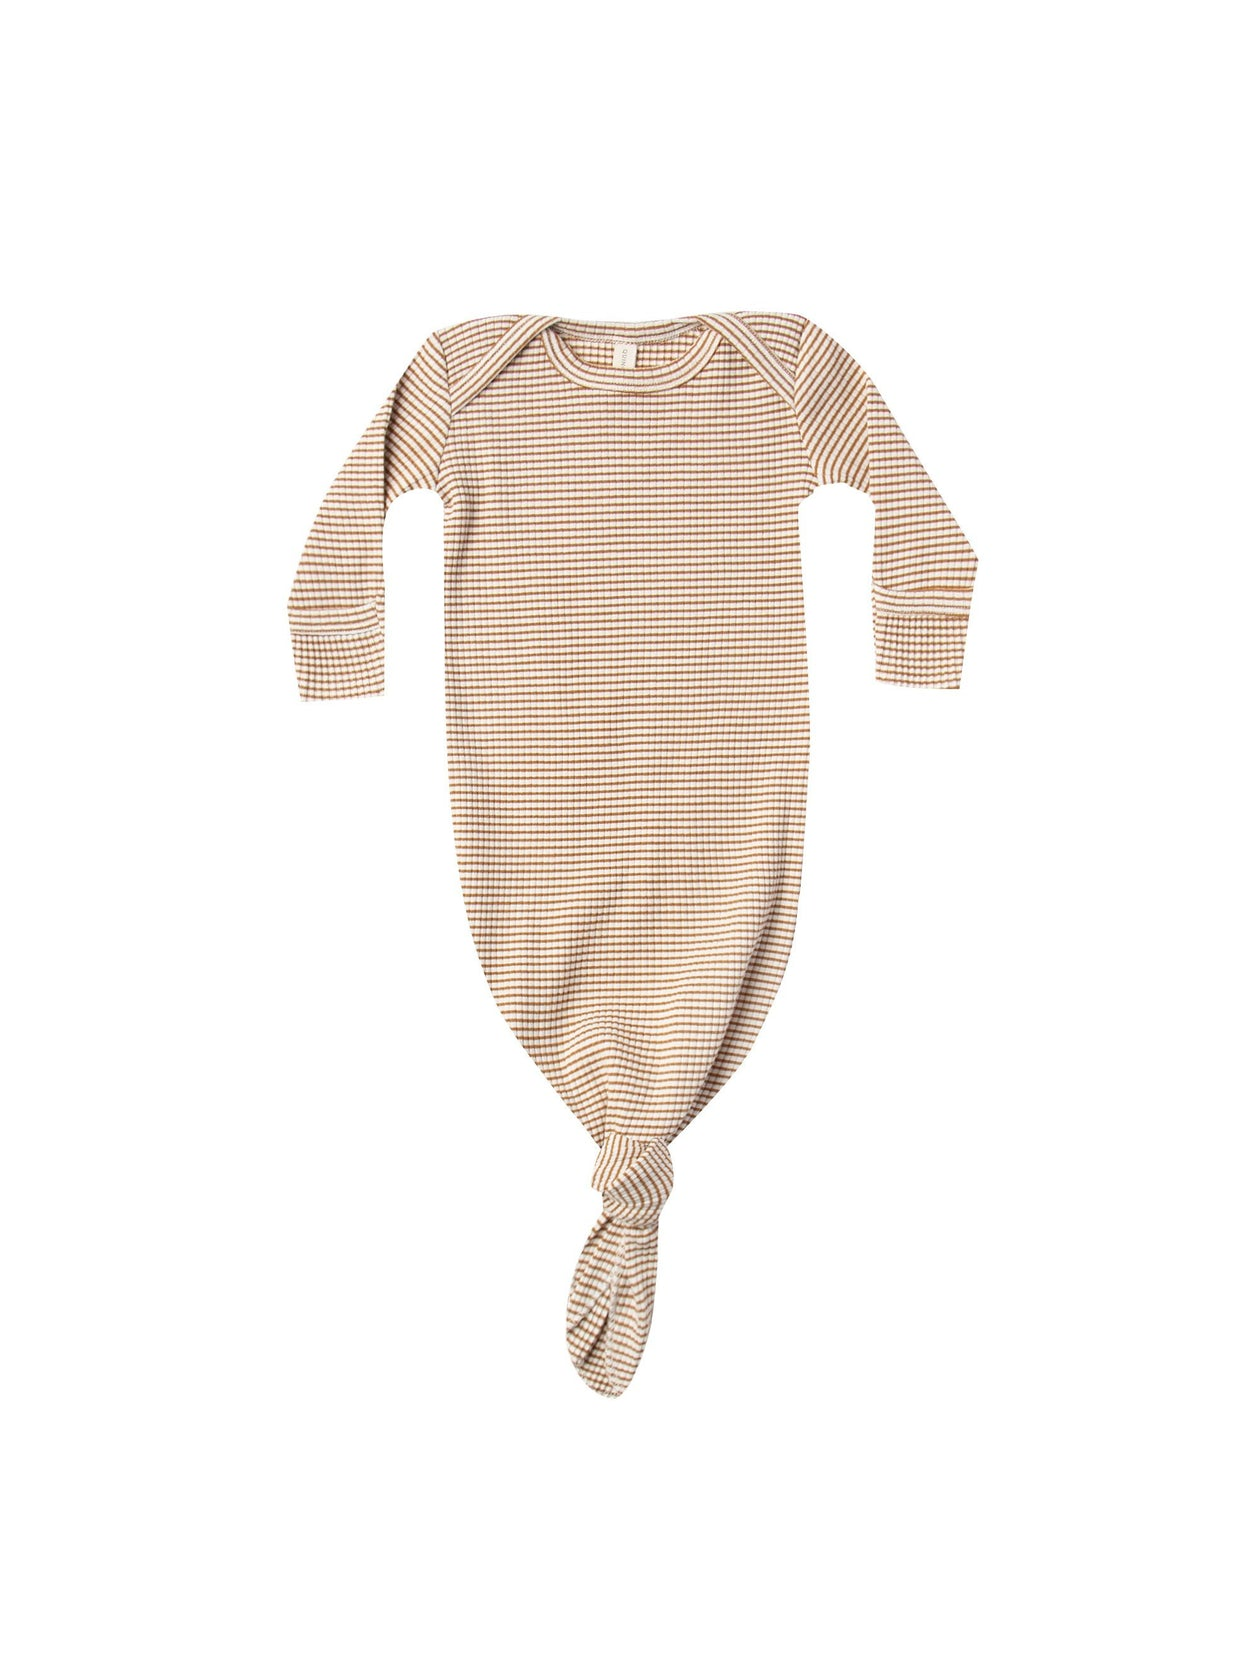 Quincy Mae Ribbed Knotted Baby Gown Walnut Stripe